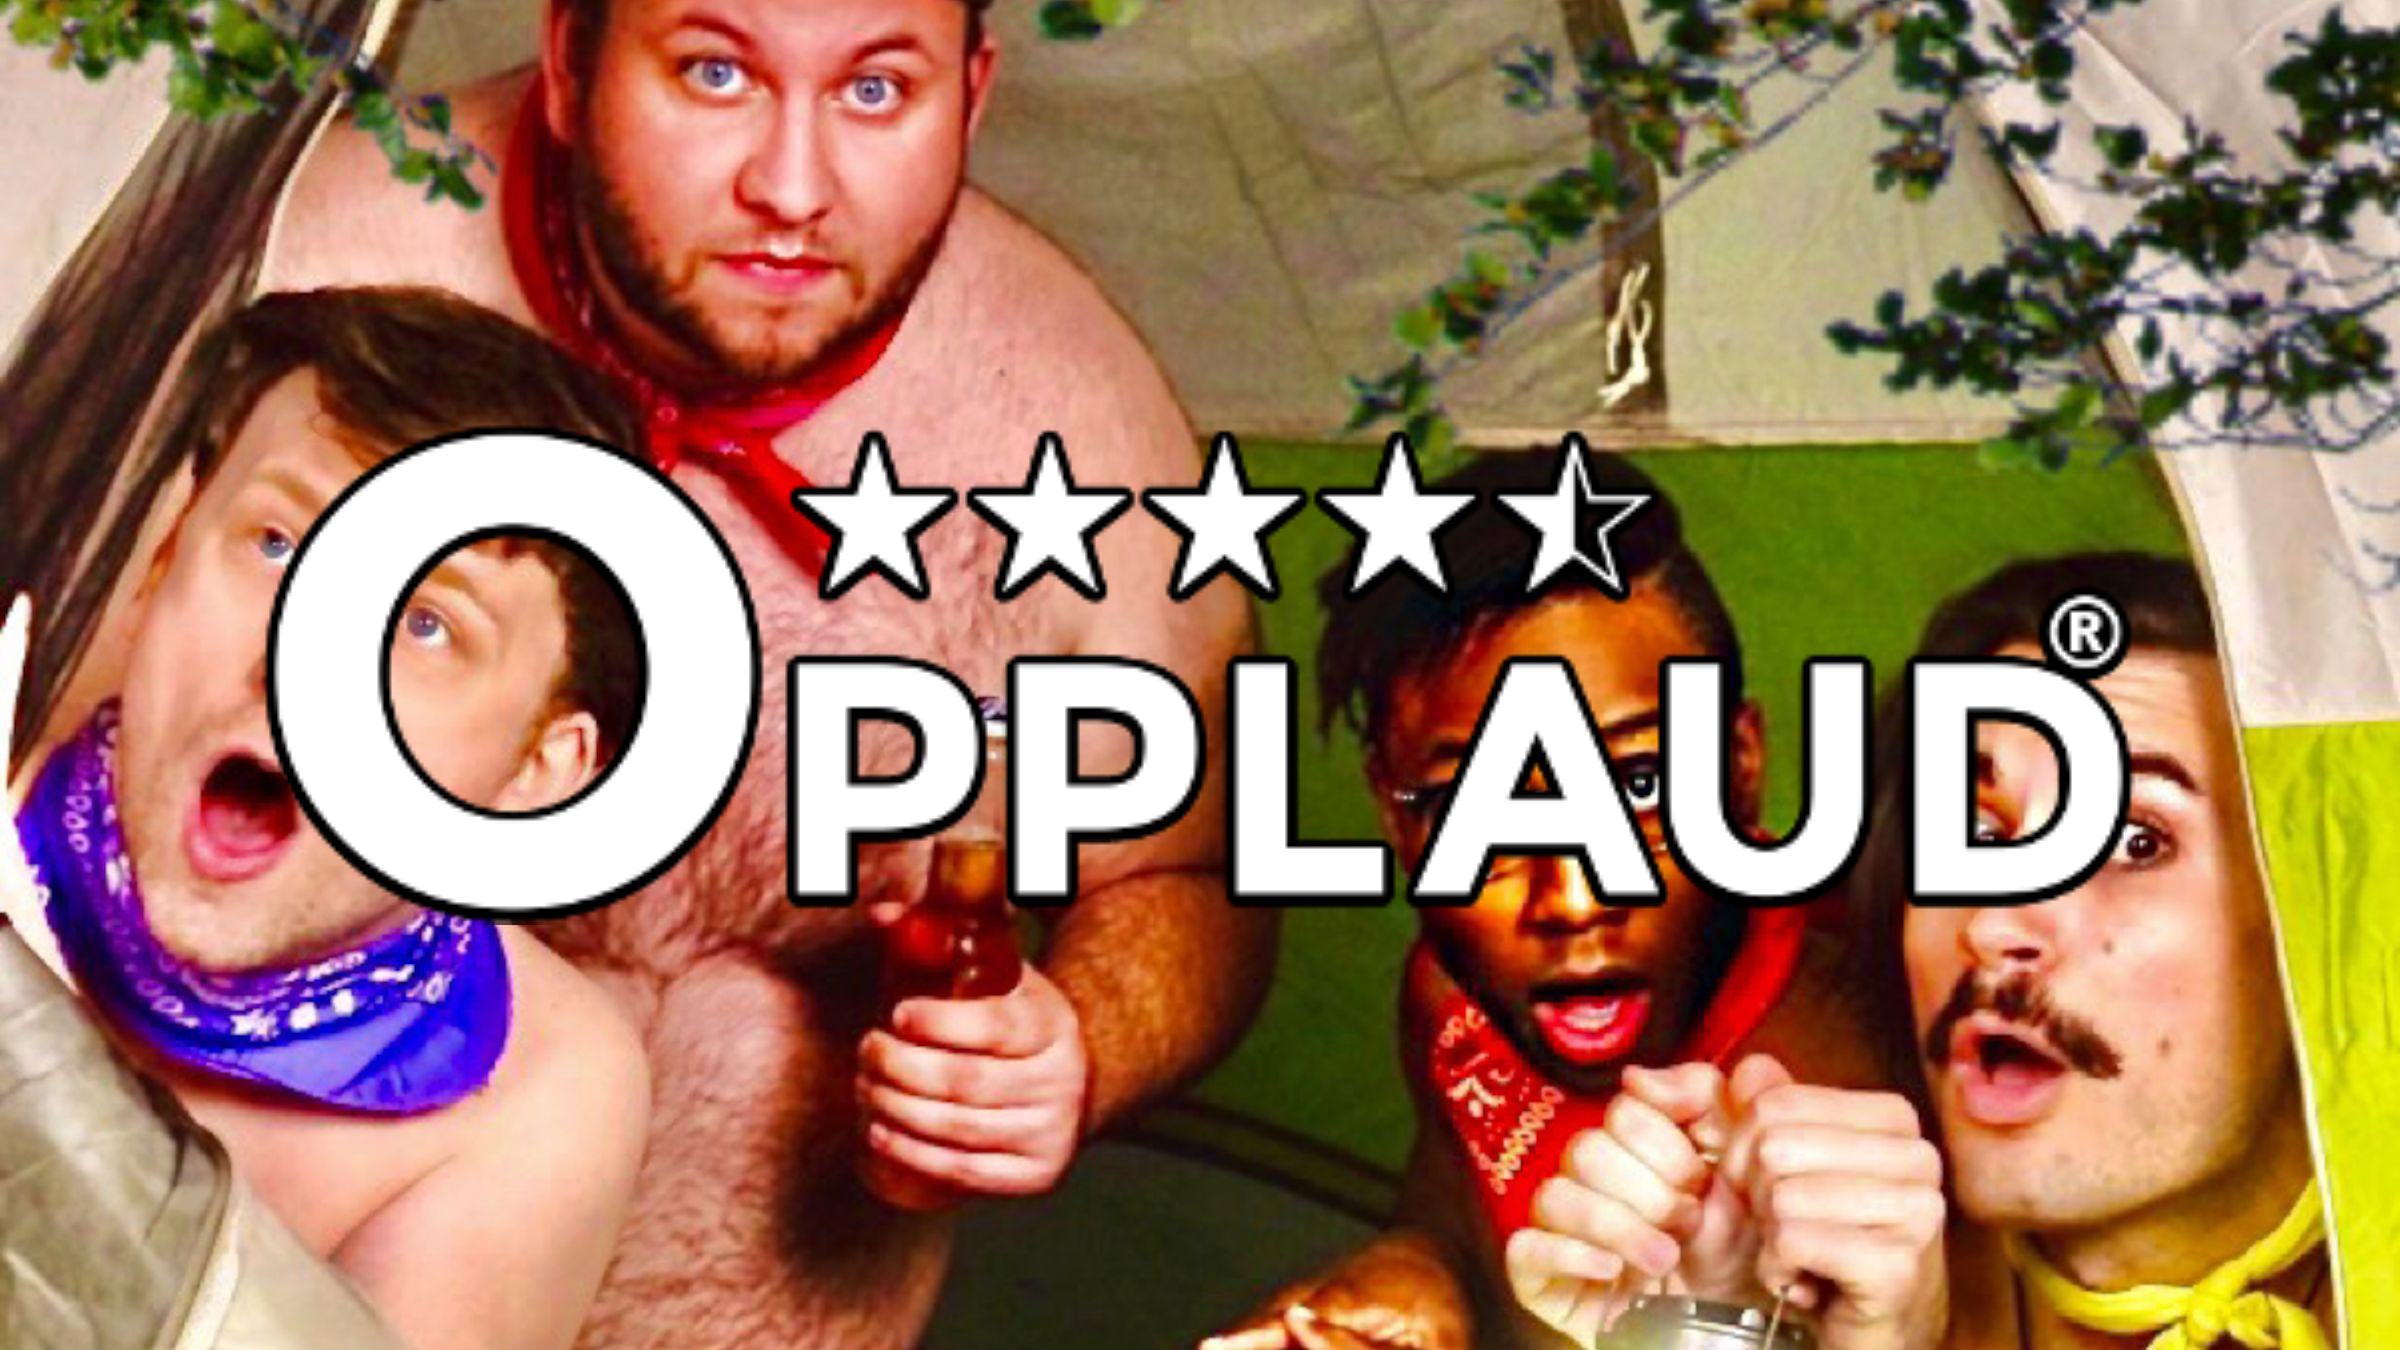 Four men (one shirtless) look out of a tent with their mouths open in surprise